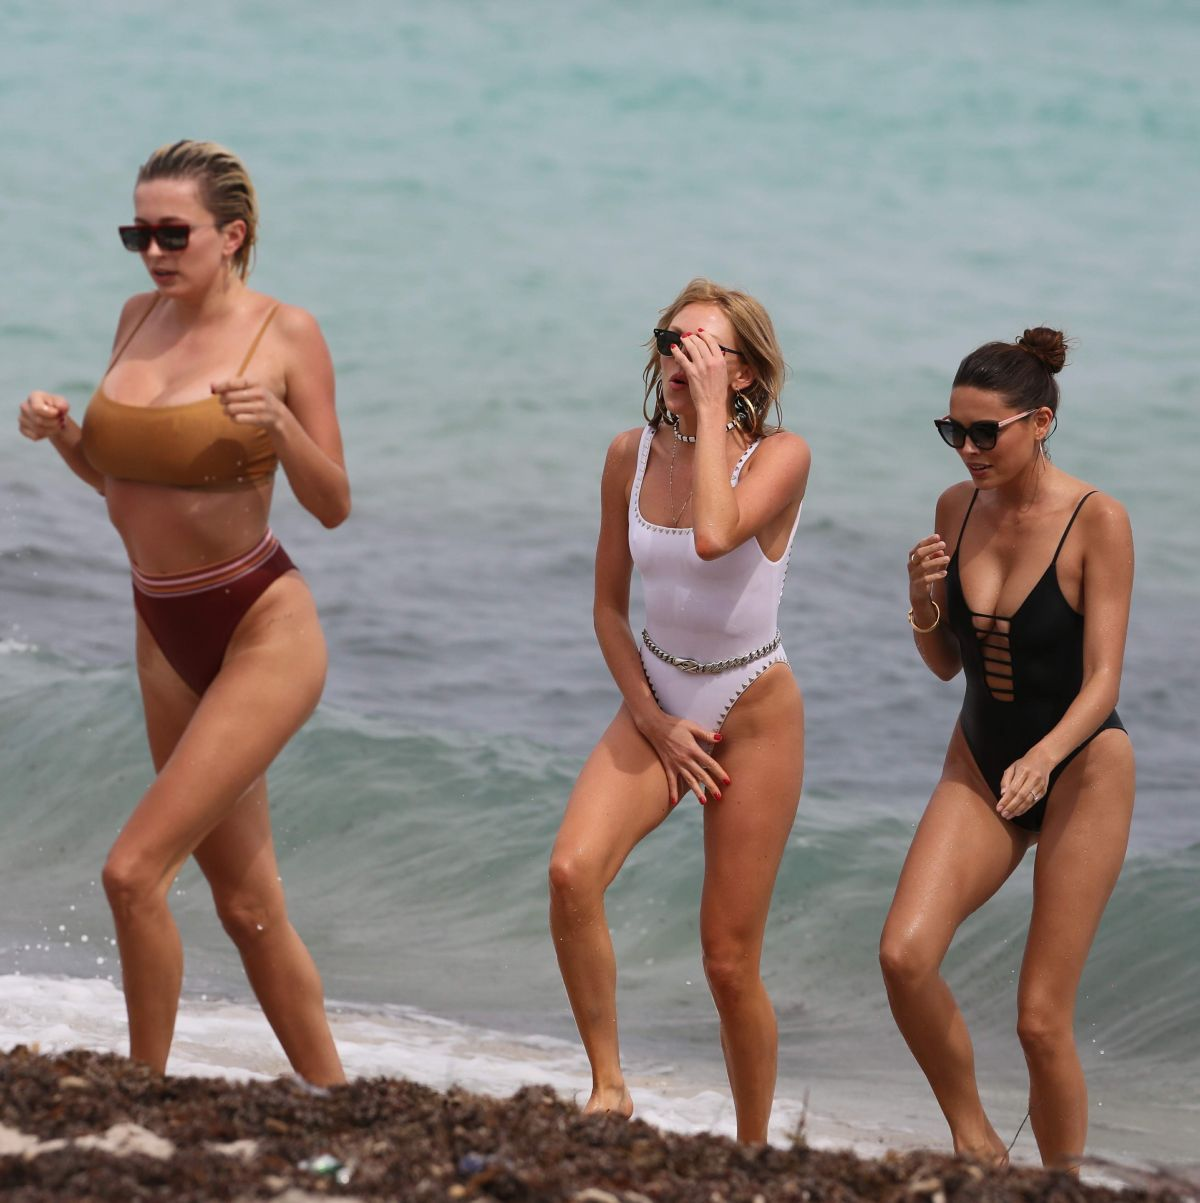 SHEA MARIE, CAROLINE VREELAND and MELODY LE in Bikinis on the Beach in Miami 04/06/2017